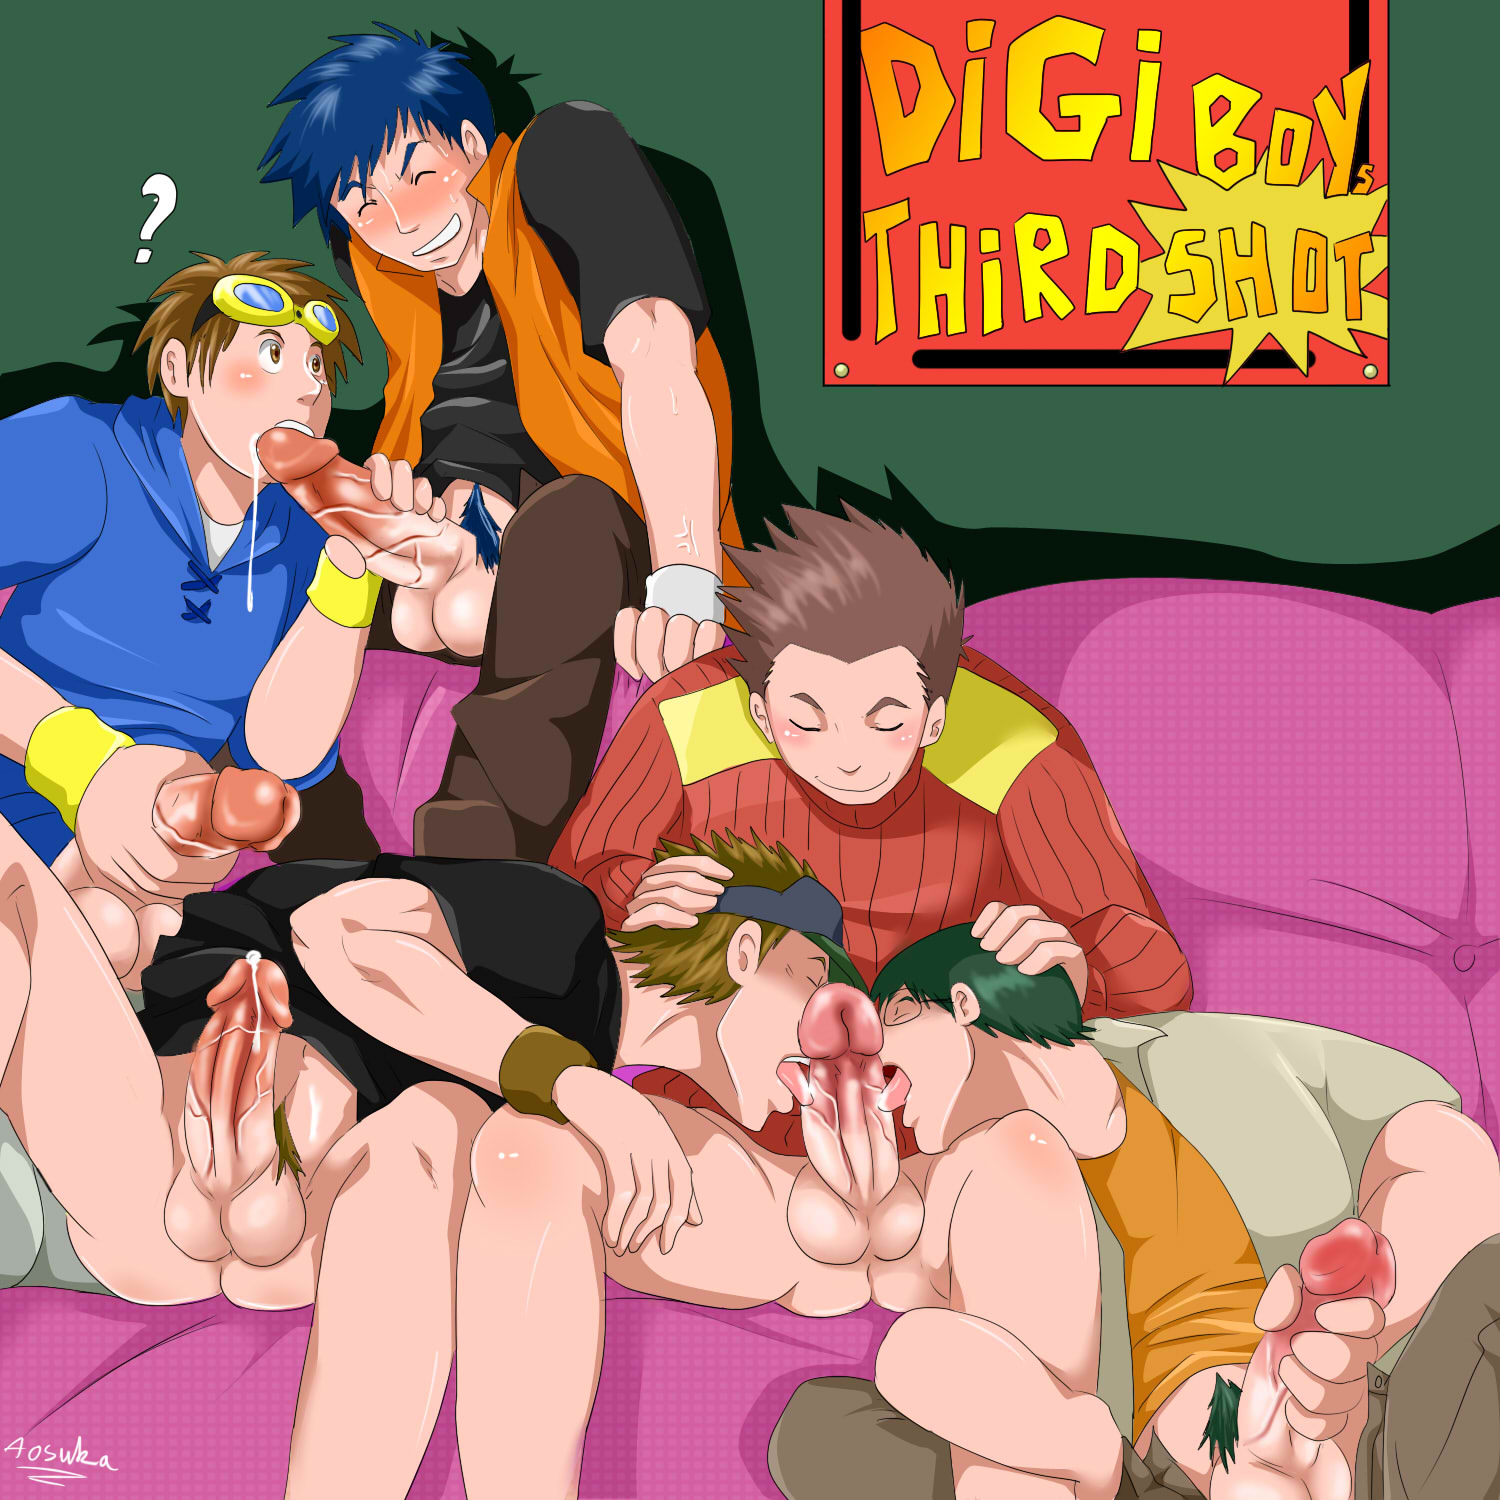 Digimon naked gay